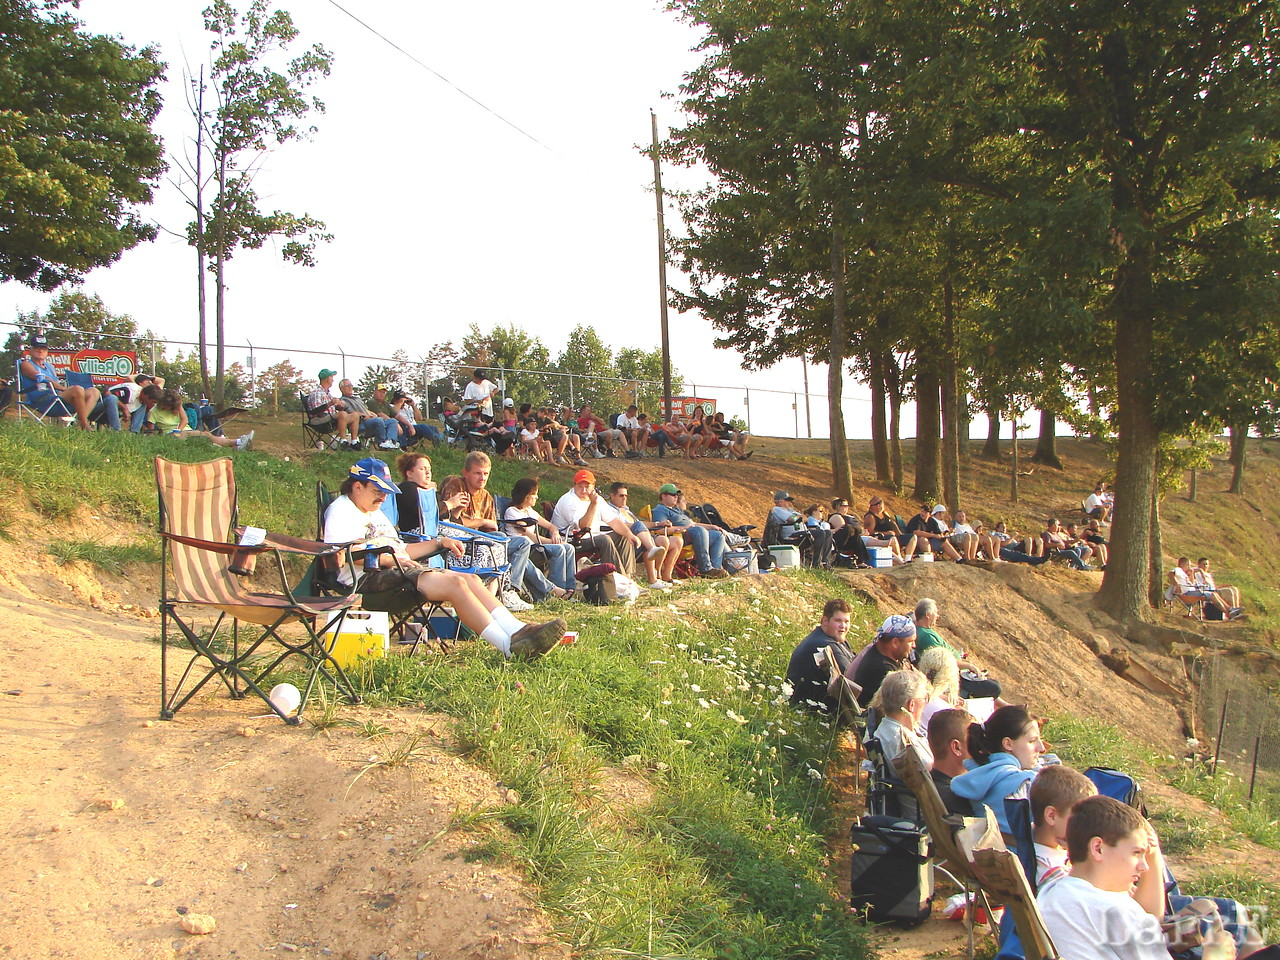 Turn 4 hillside seating